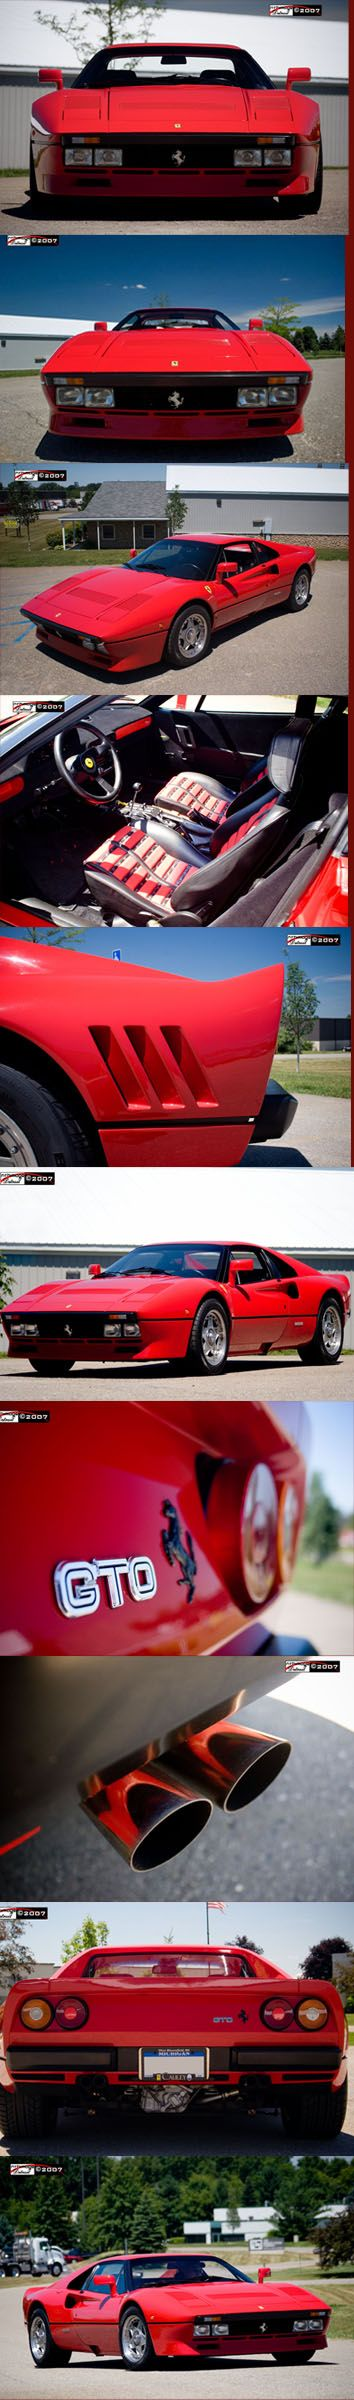 Ferrari 288 GTO ★。☆。JpM ENTERTAINMENT ☆。★。